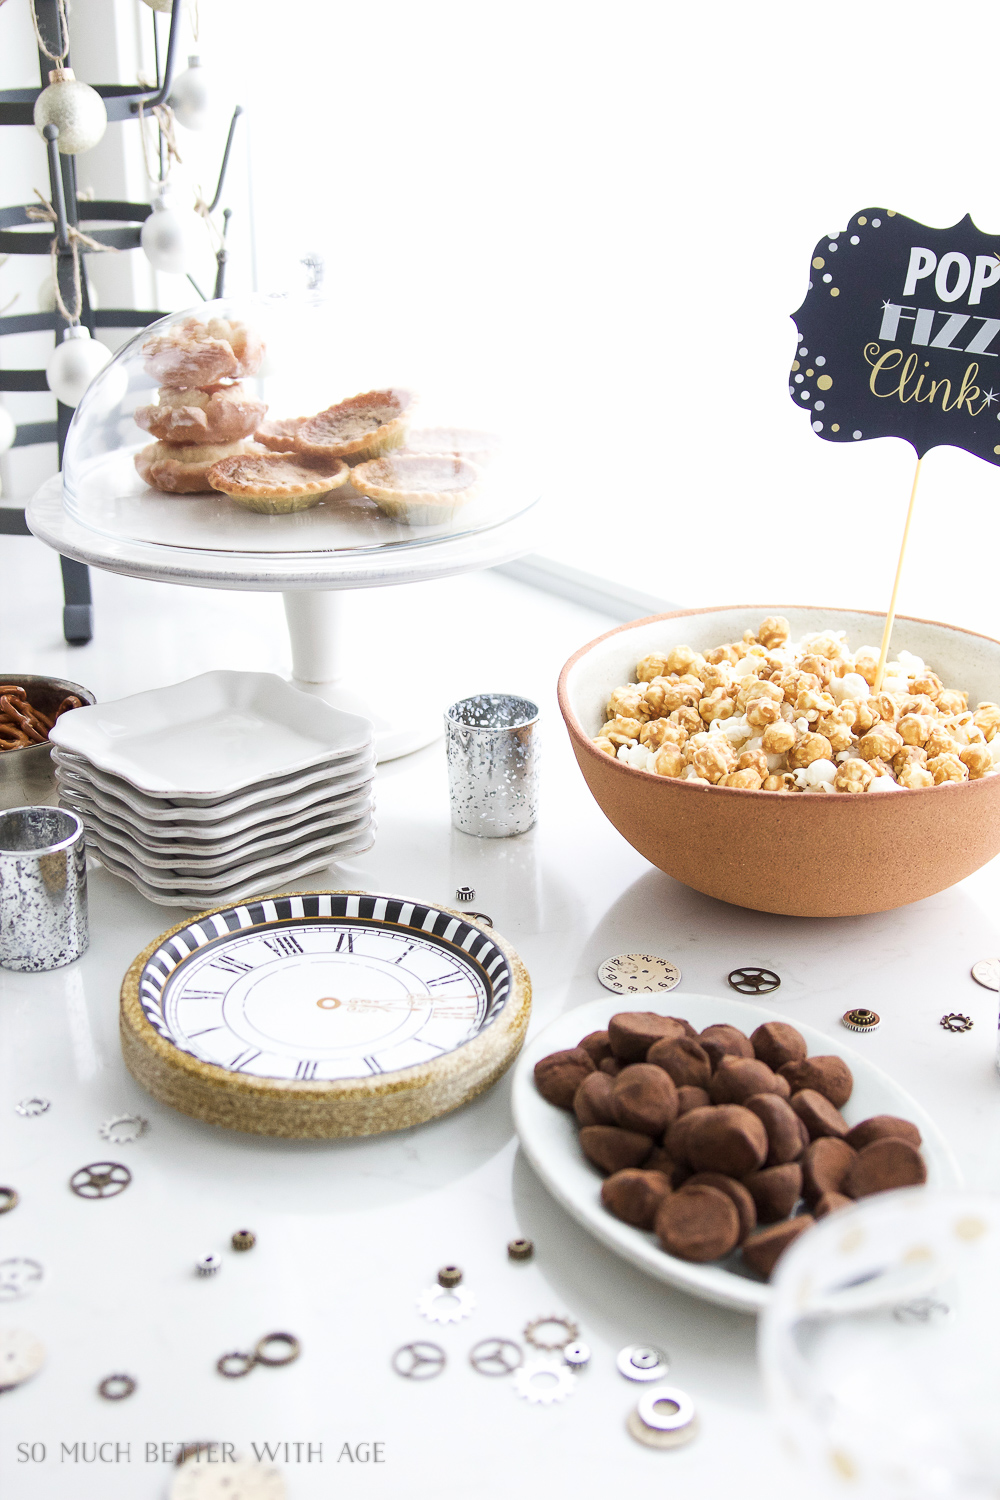 A New Year's Eve Party Bubbly Bar with Party Tips / popcorn on table - So Much Better With Age